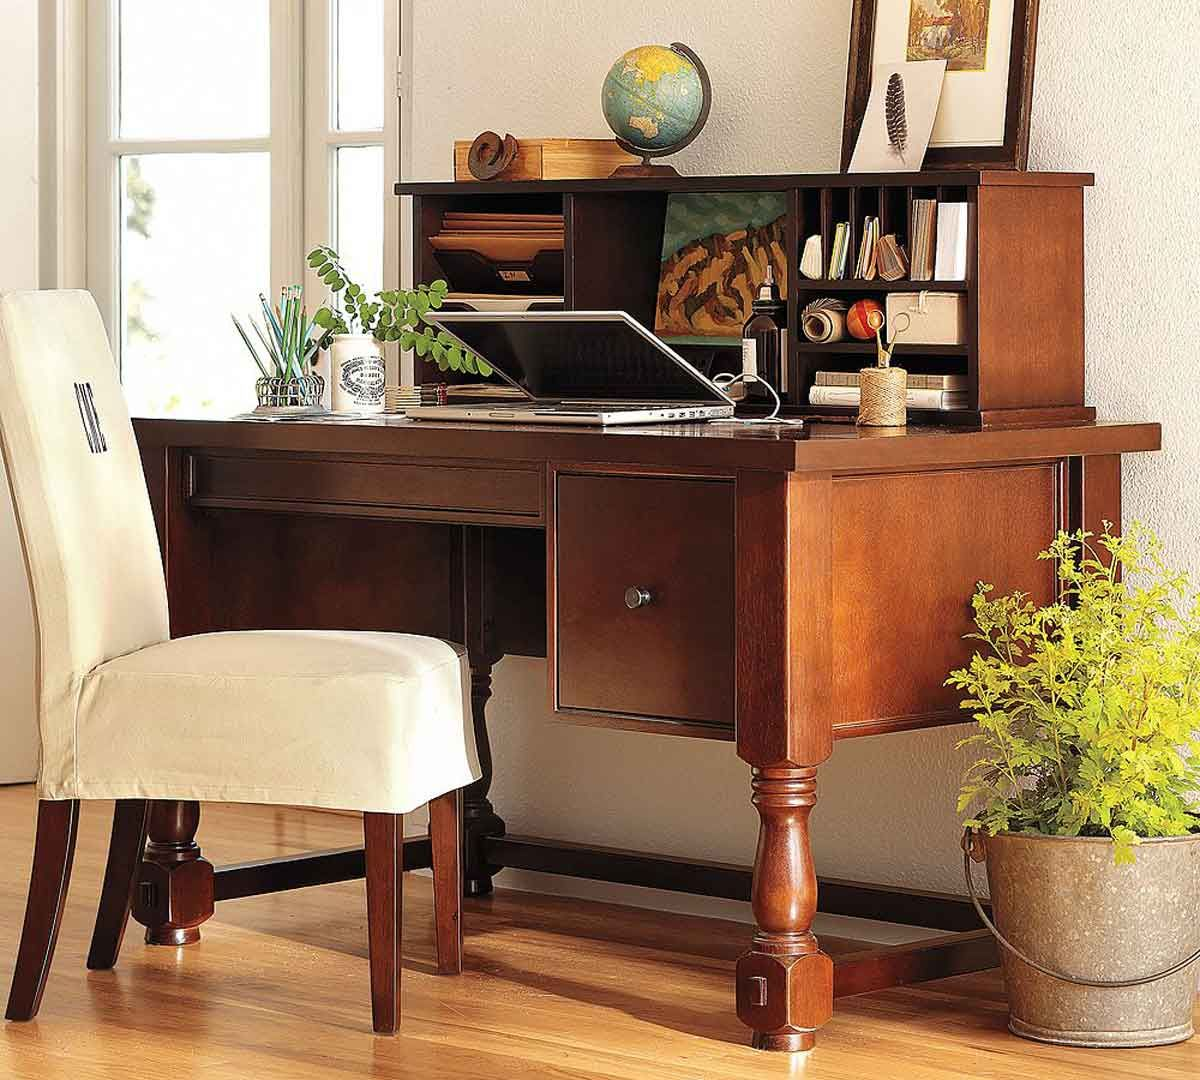 designing home office decorating inspiration 1000 images about office on pinterest reception desks home office design amazing kbsa home office decorating inspiration consumer